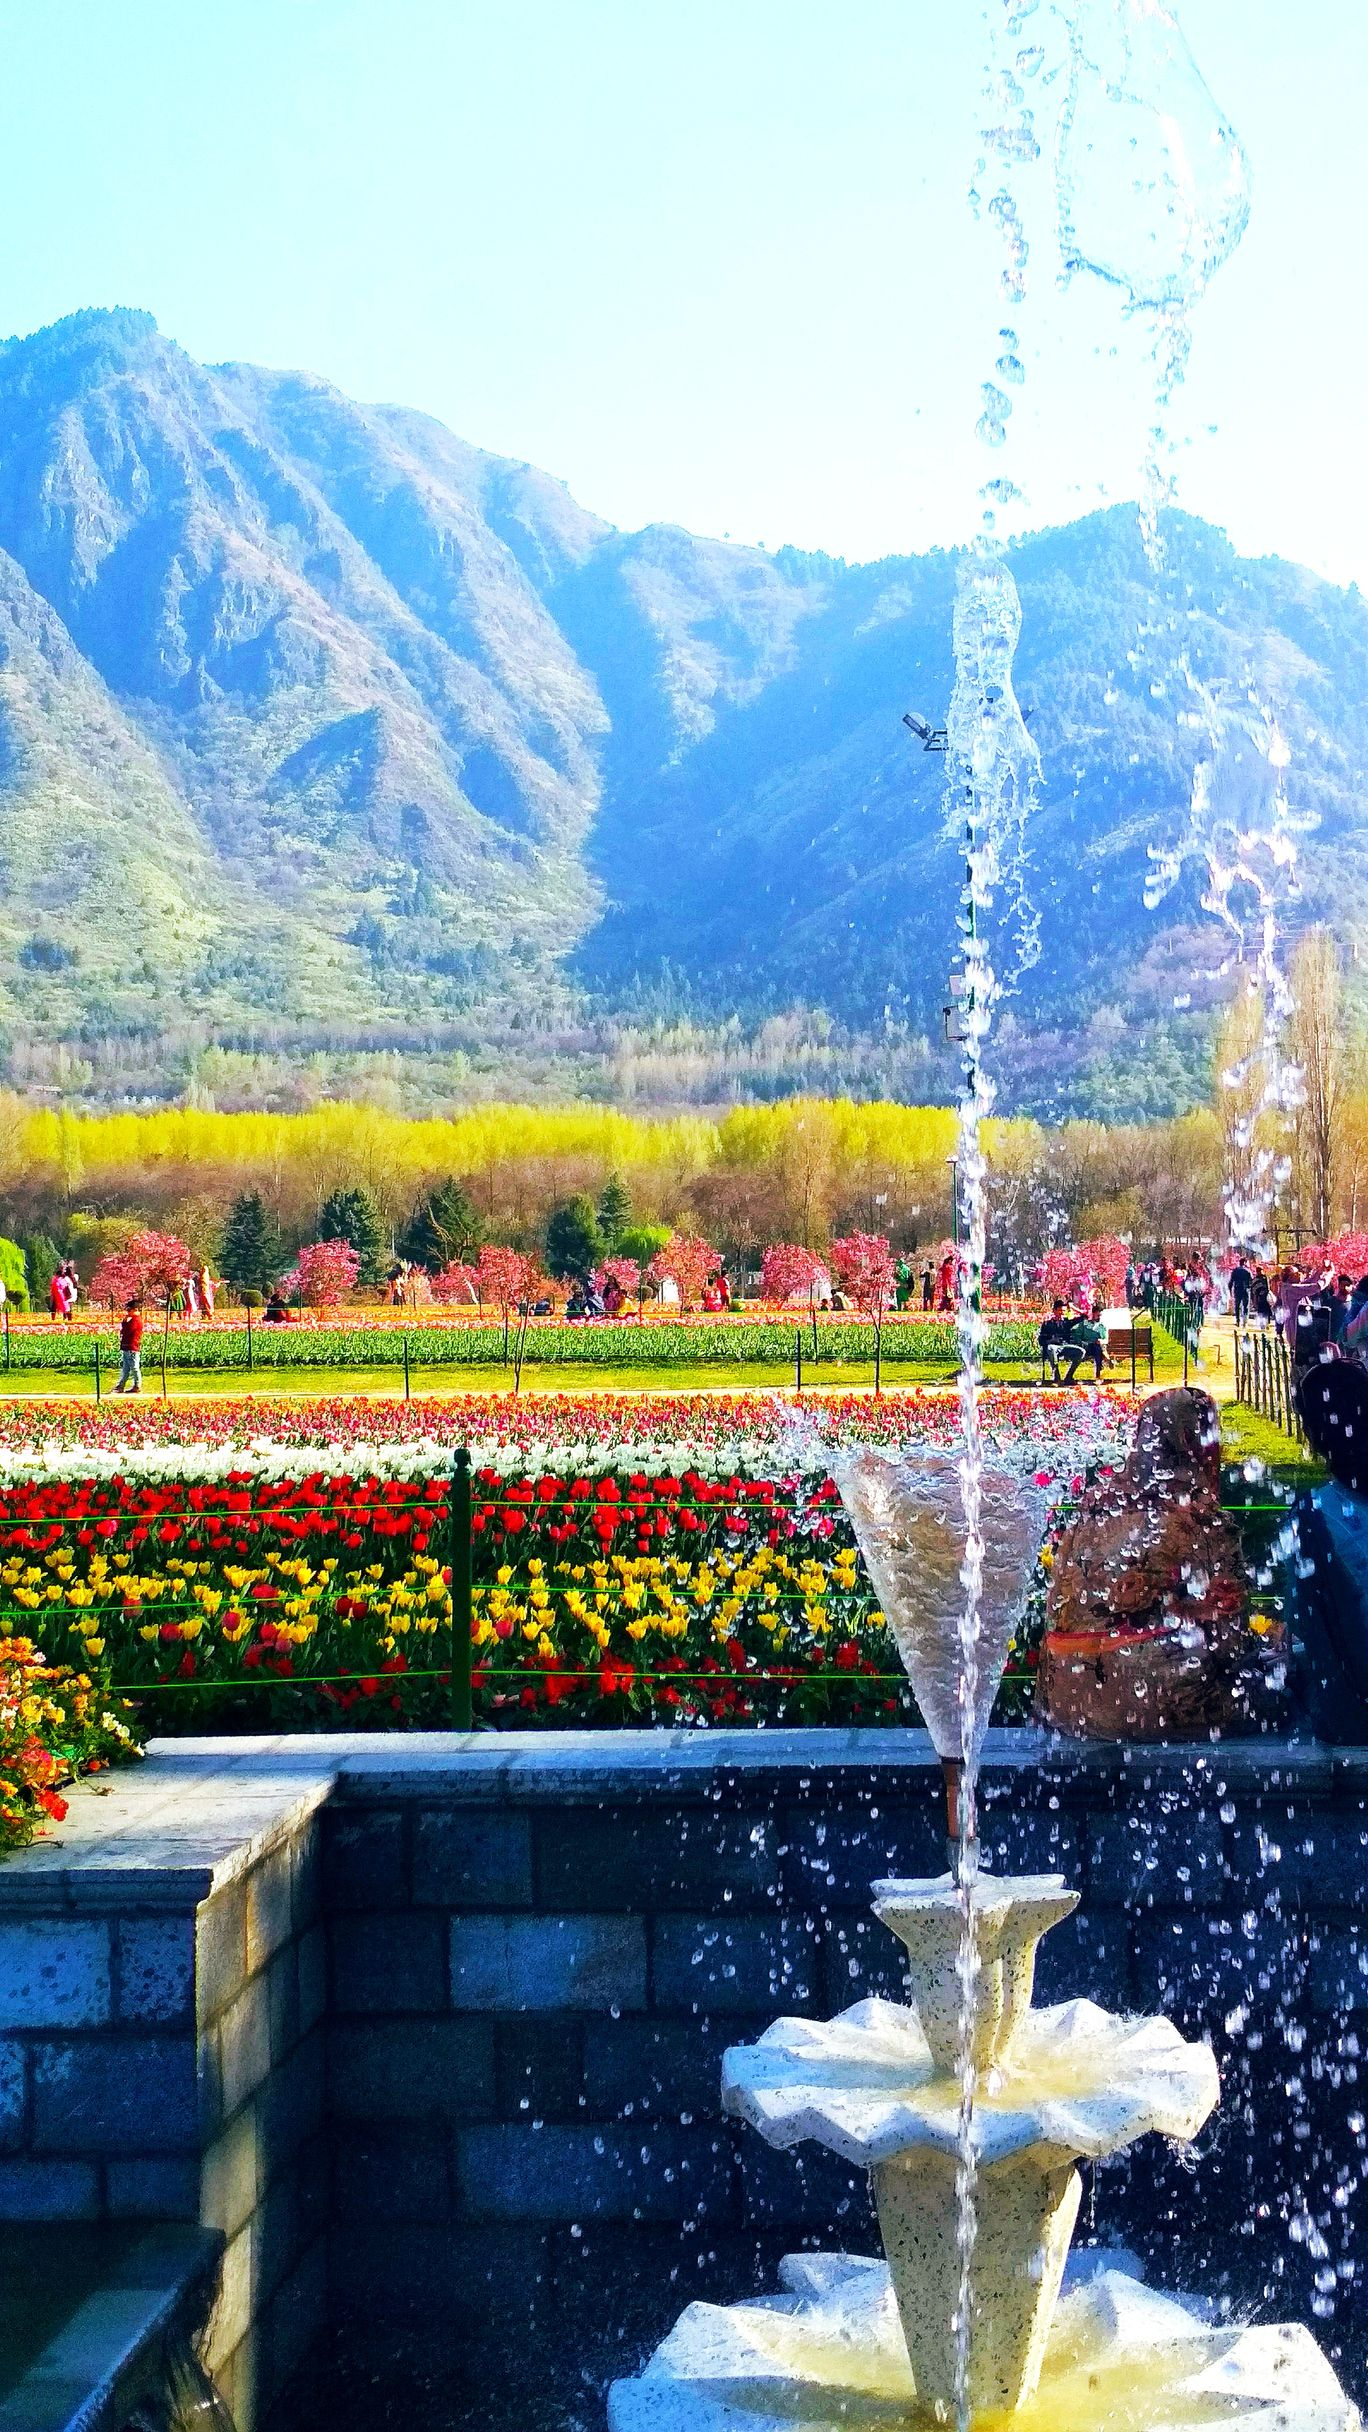 Photo of Tulip Garden By kanchan bhat